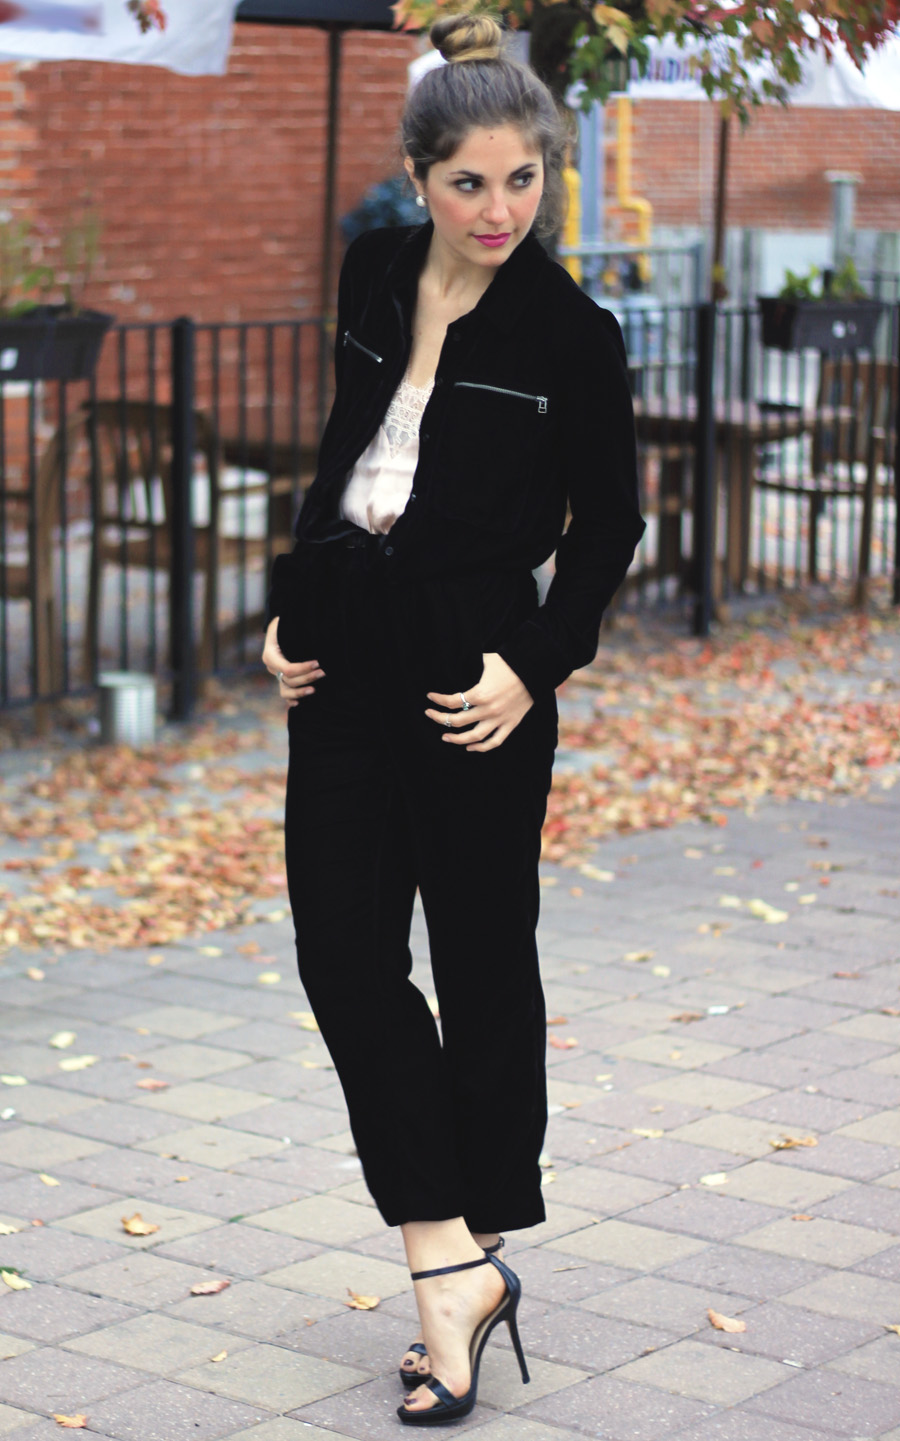 h&m black velvet jumpsuit with zippers silver fall fashion